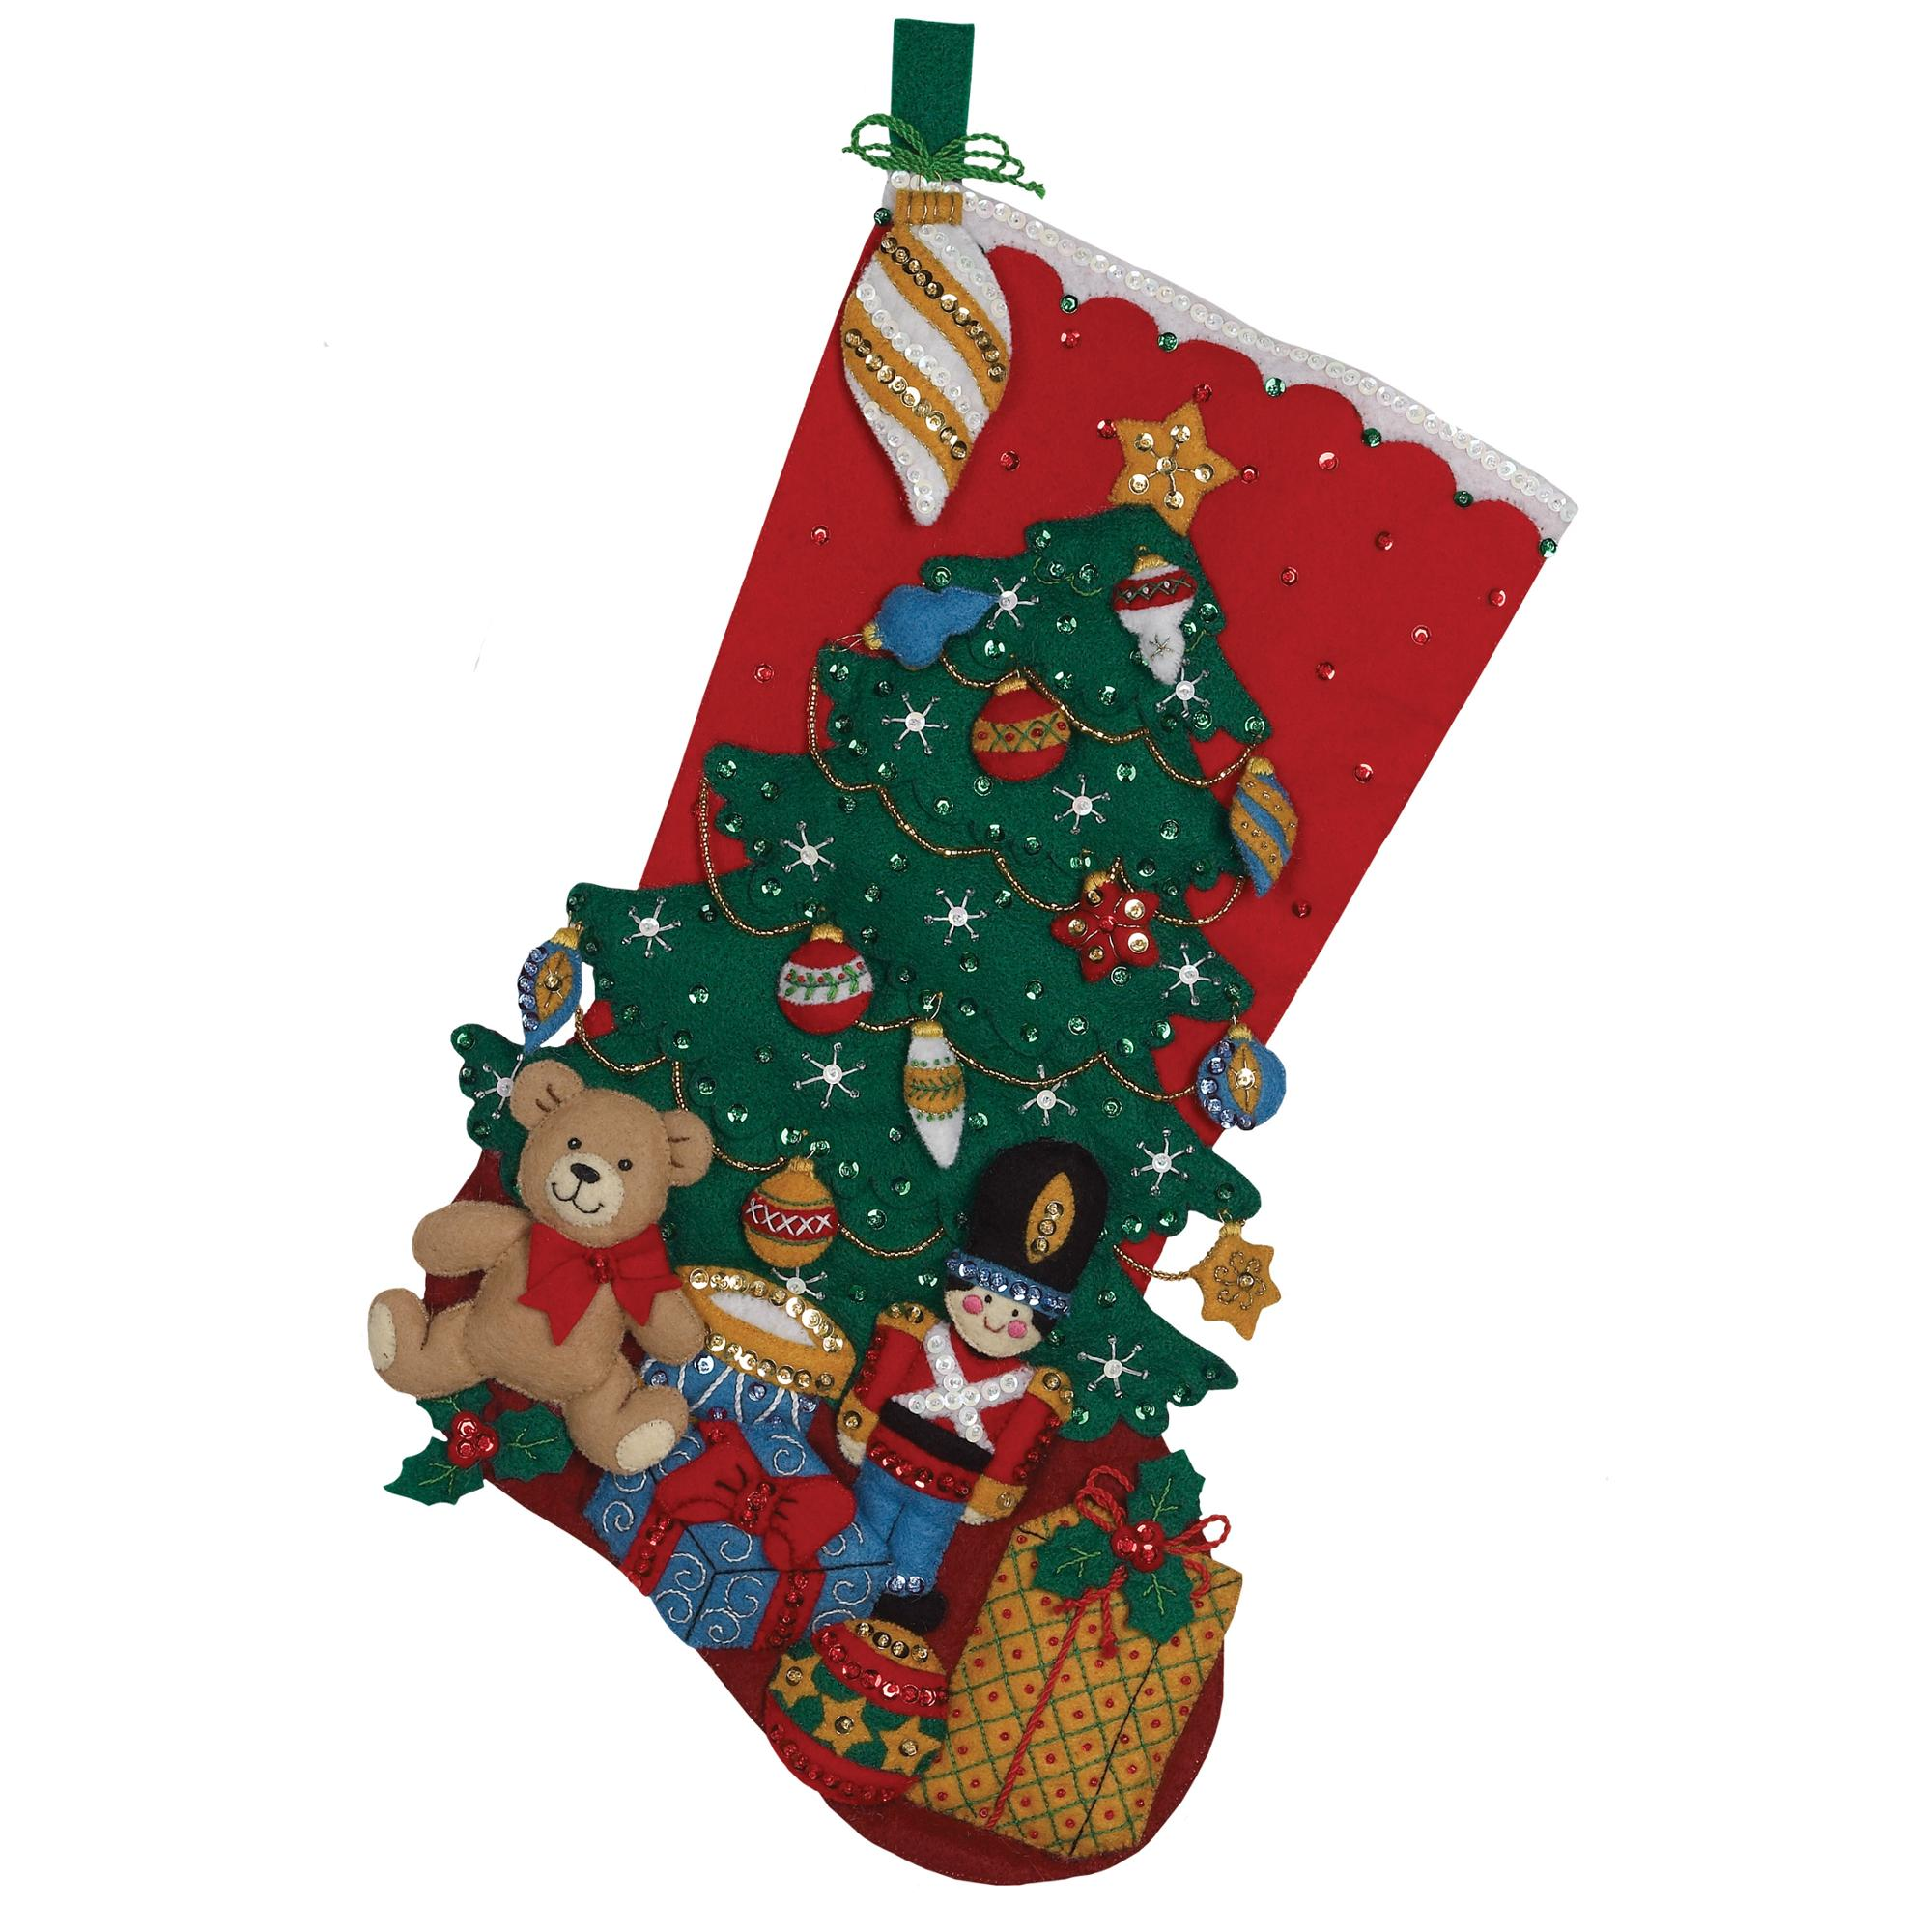 Bucilla Felt Applique Stocking Kit by Plaid, Under the Tree, 18""